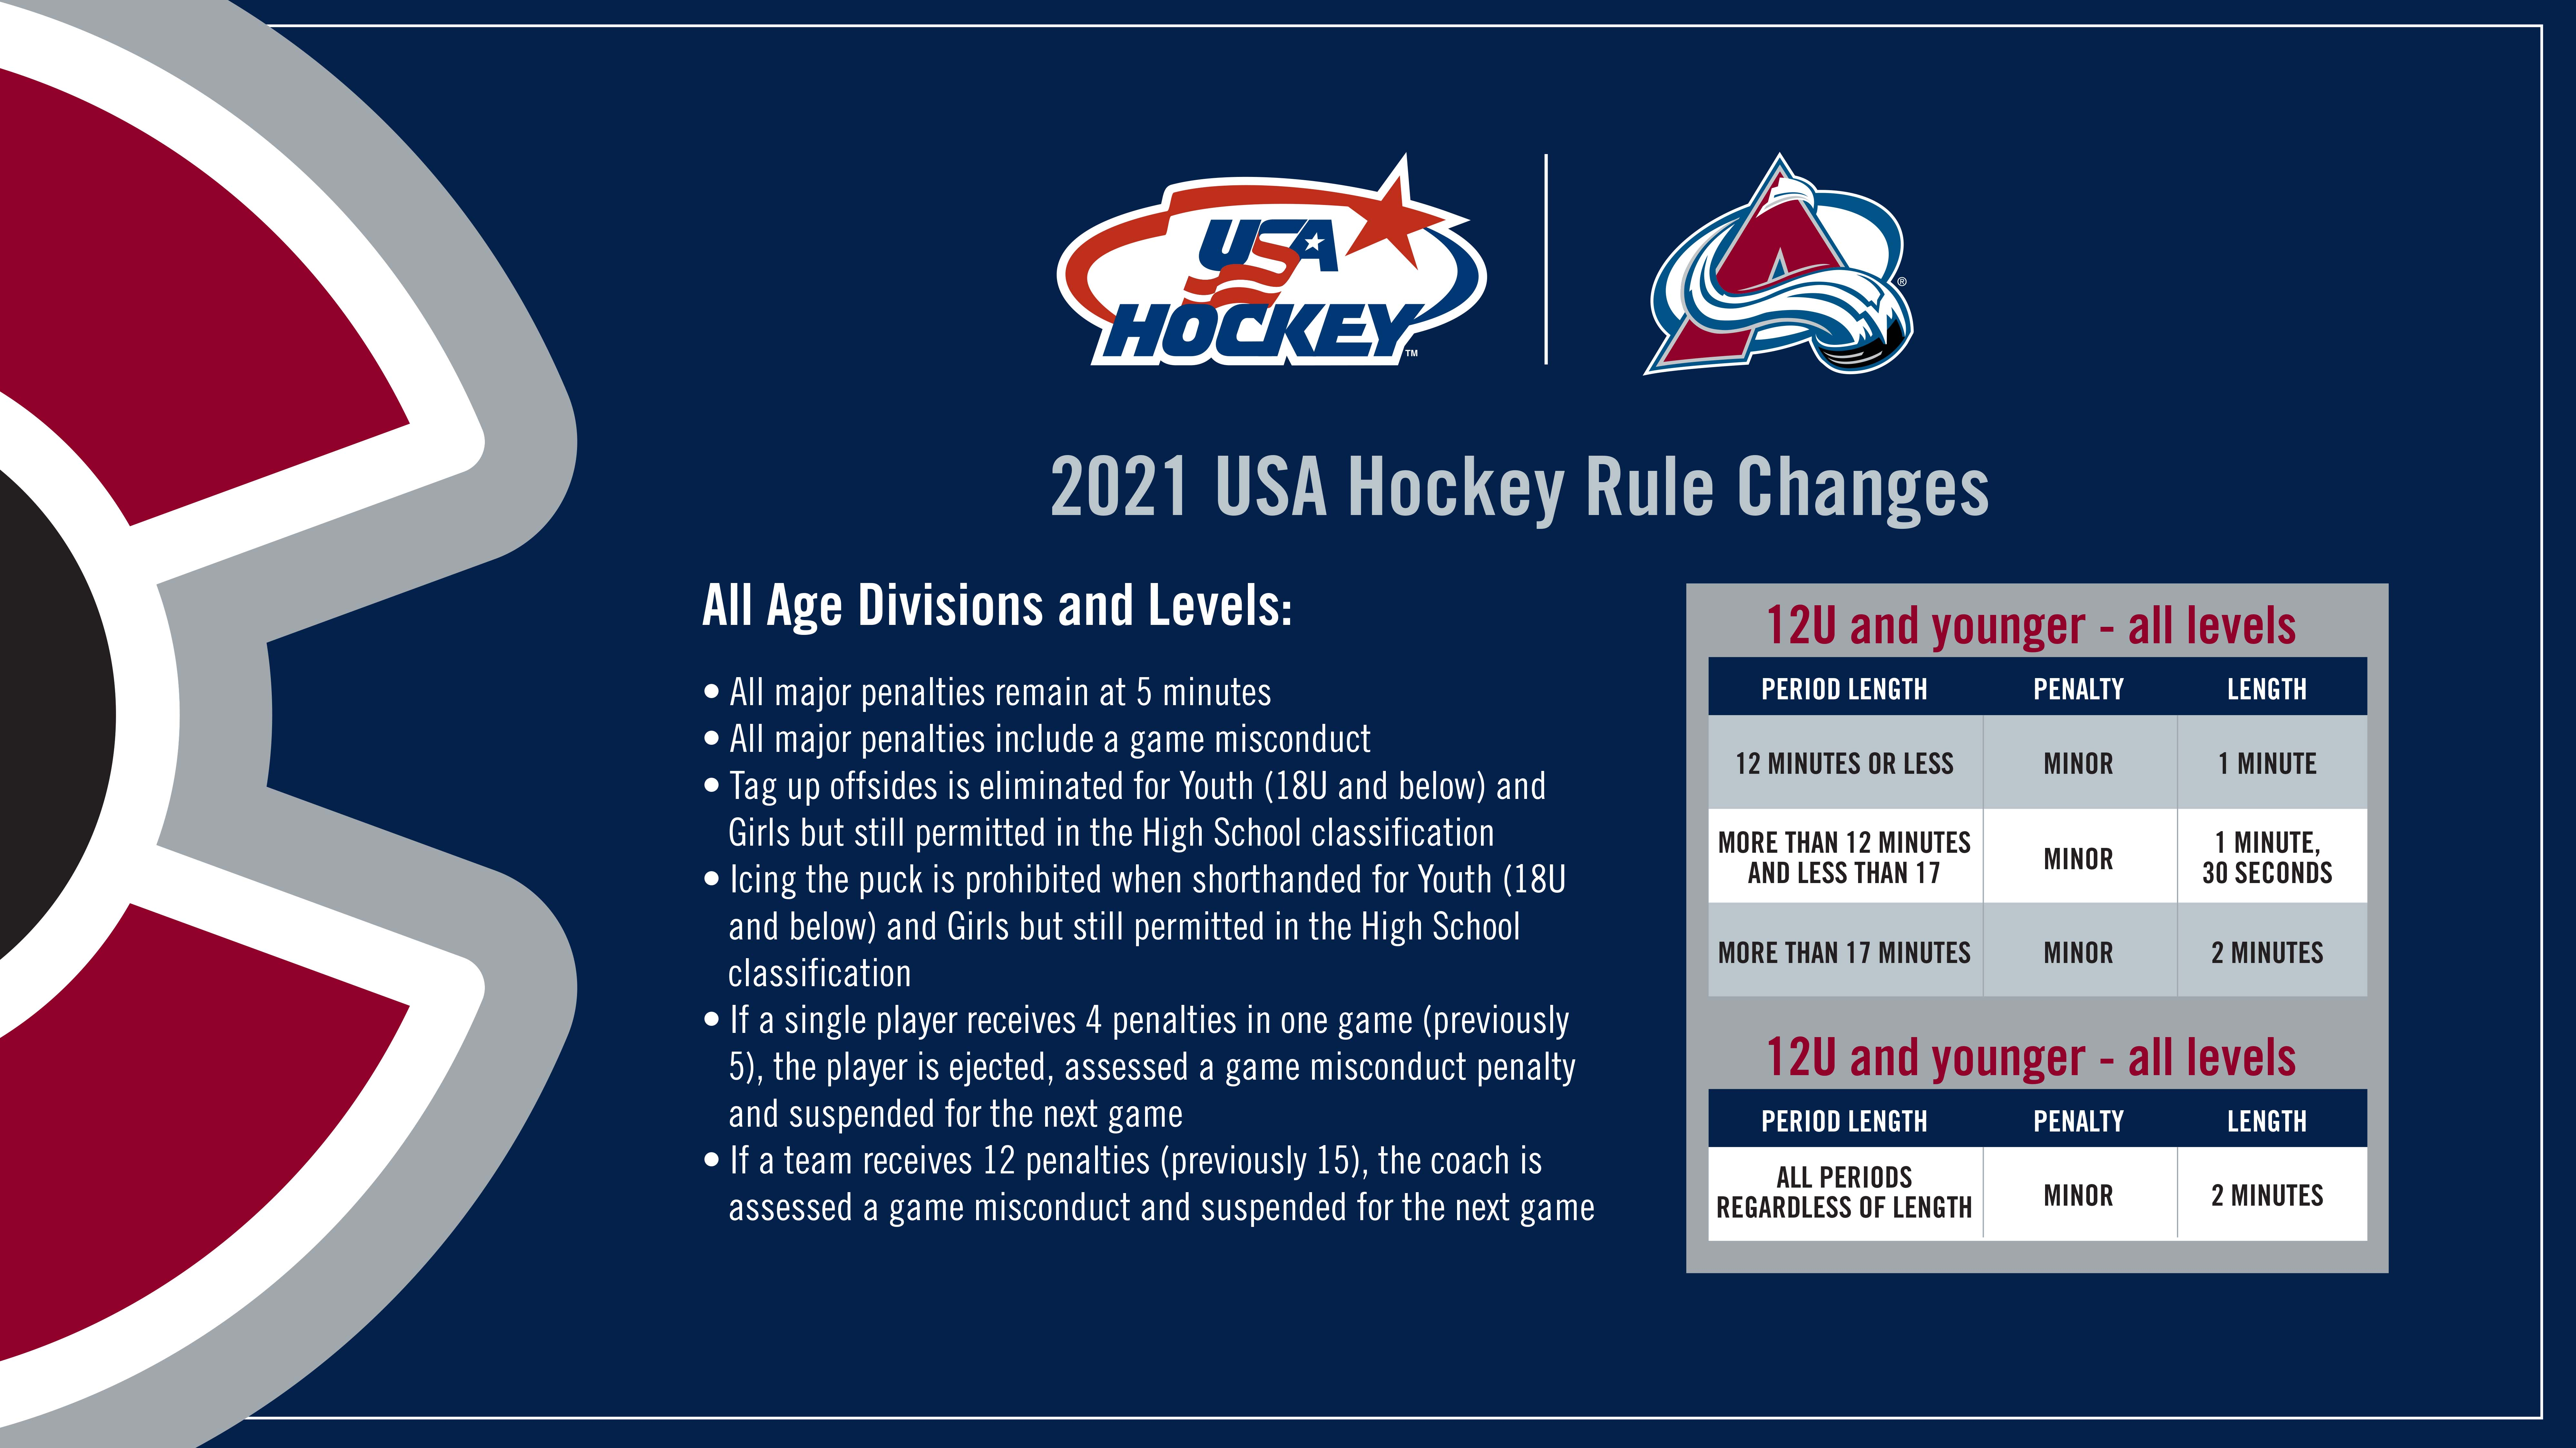 On-ice officials are tasked with enforcing USA Hockey new rules aimed at improving player safety. The changes will be implemented this season. Photo by SportsEngine